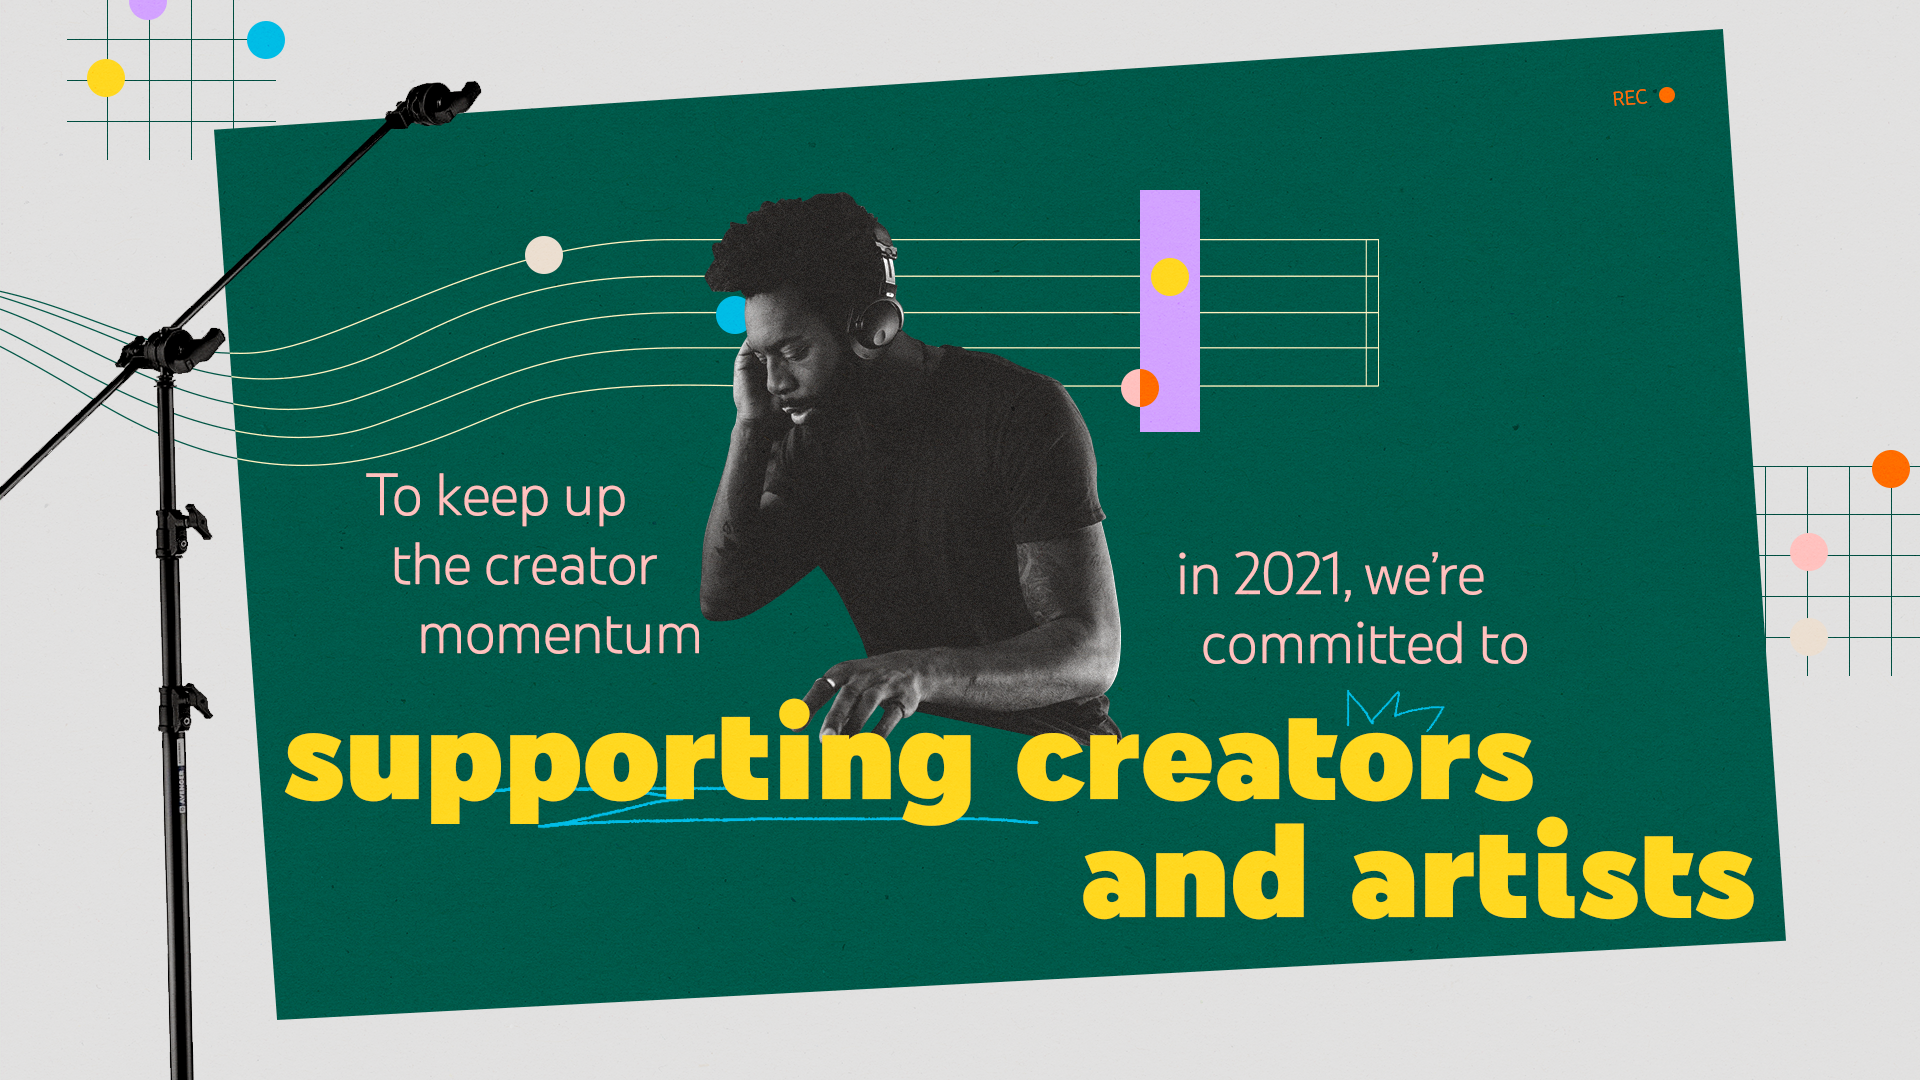 Supporting creators and artists